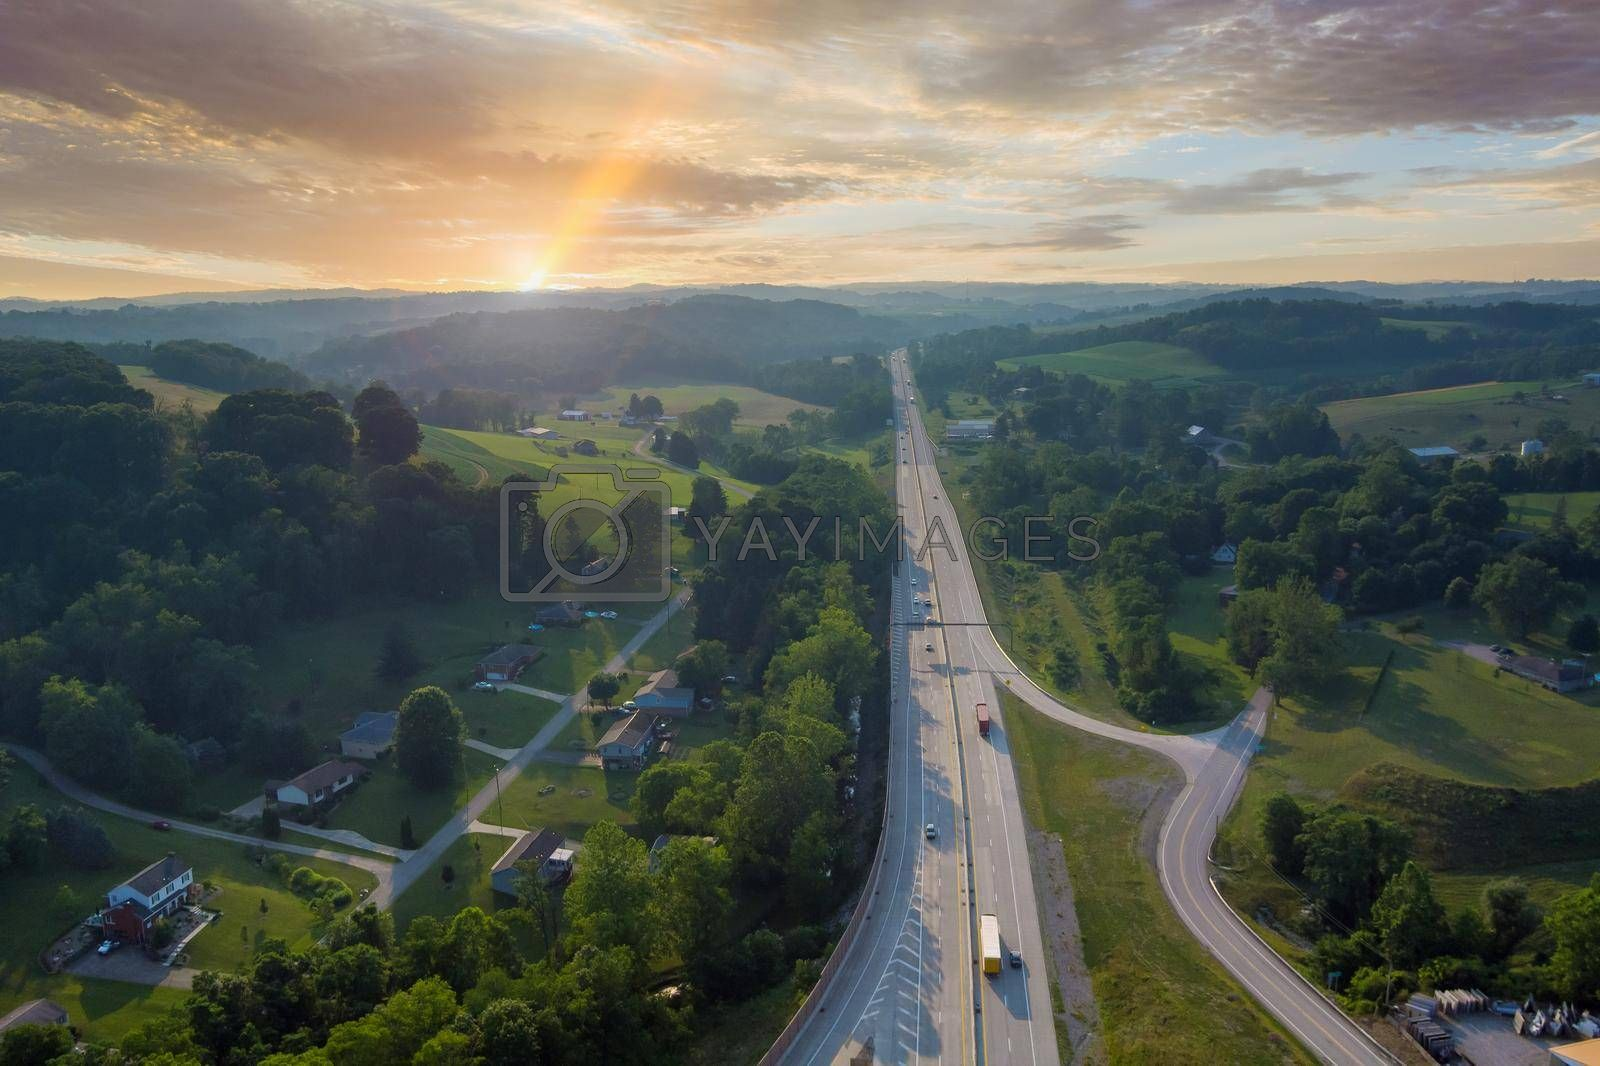 Royalty free image of Aerial view of Dwight D. Eisenhower highway 70 road near small Bentleyville town in Pennsylvania, USA by ungvar